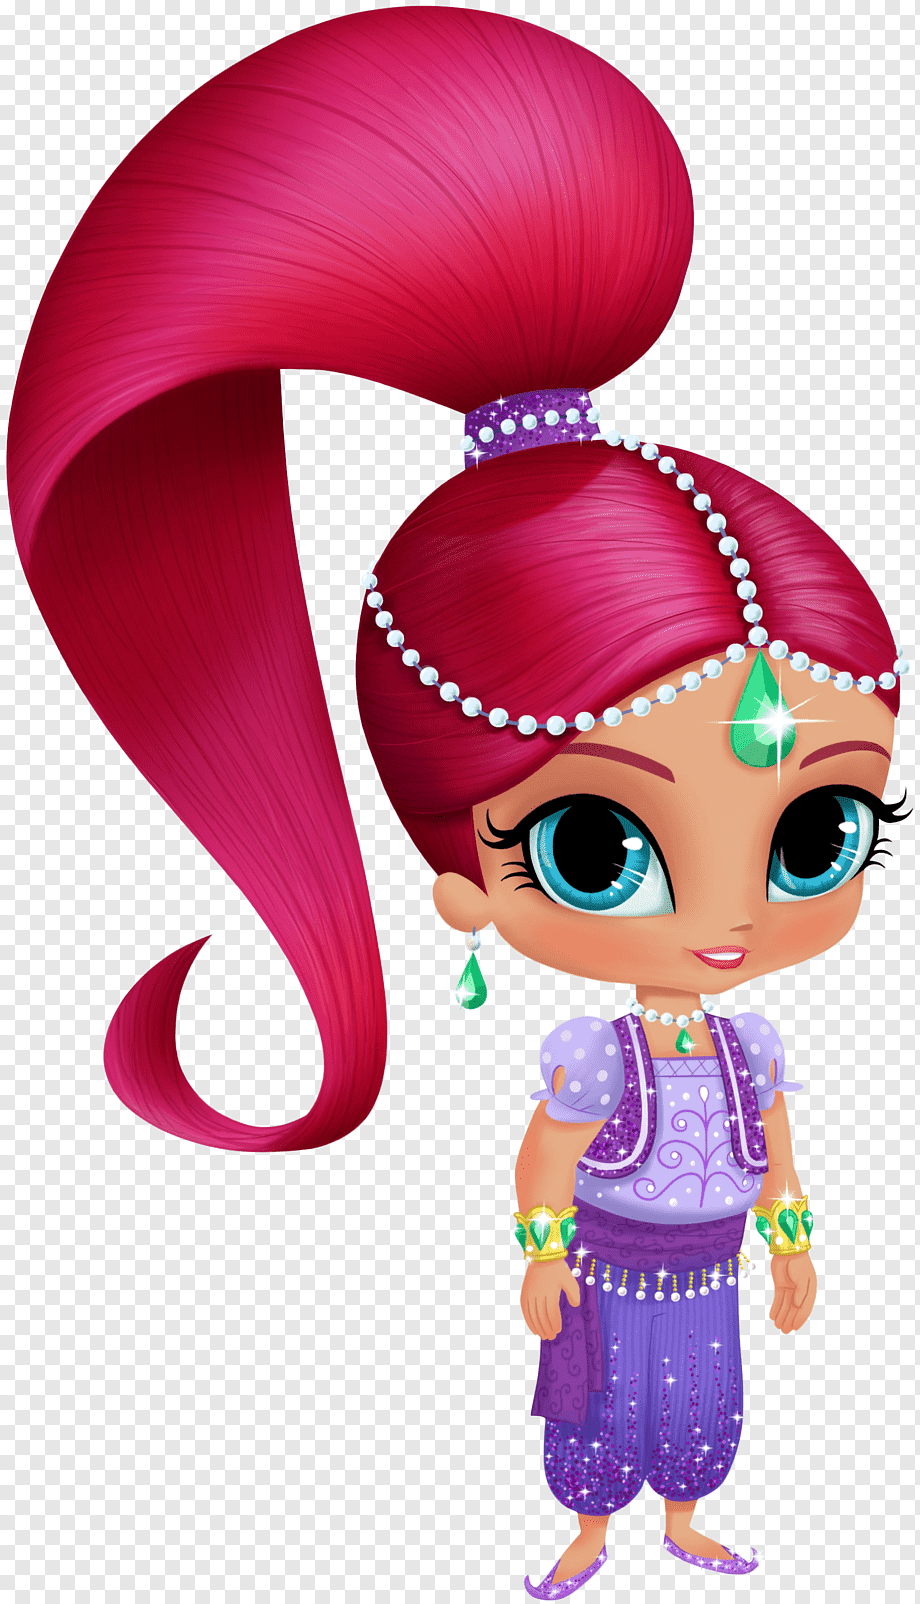 Pink Haired Female Chartacter Children S Television Series Nickelodeon Coloring In 2020 Shimmer And Shine Characters Shimmer And Shine Costume Shimmer And Shine Cake